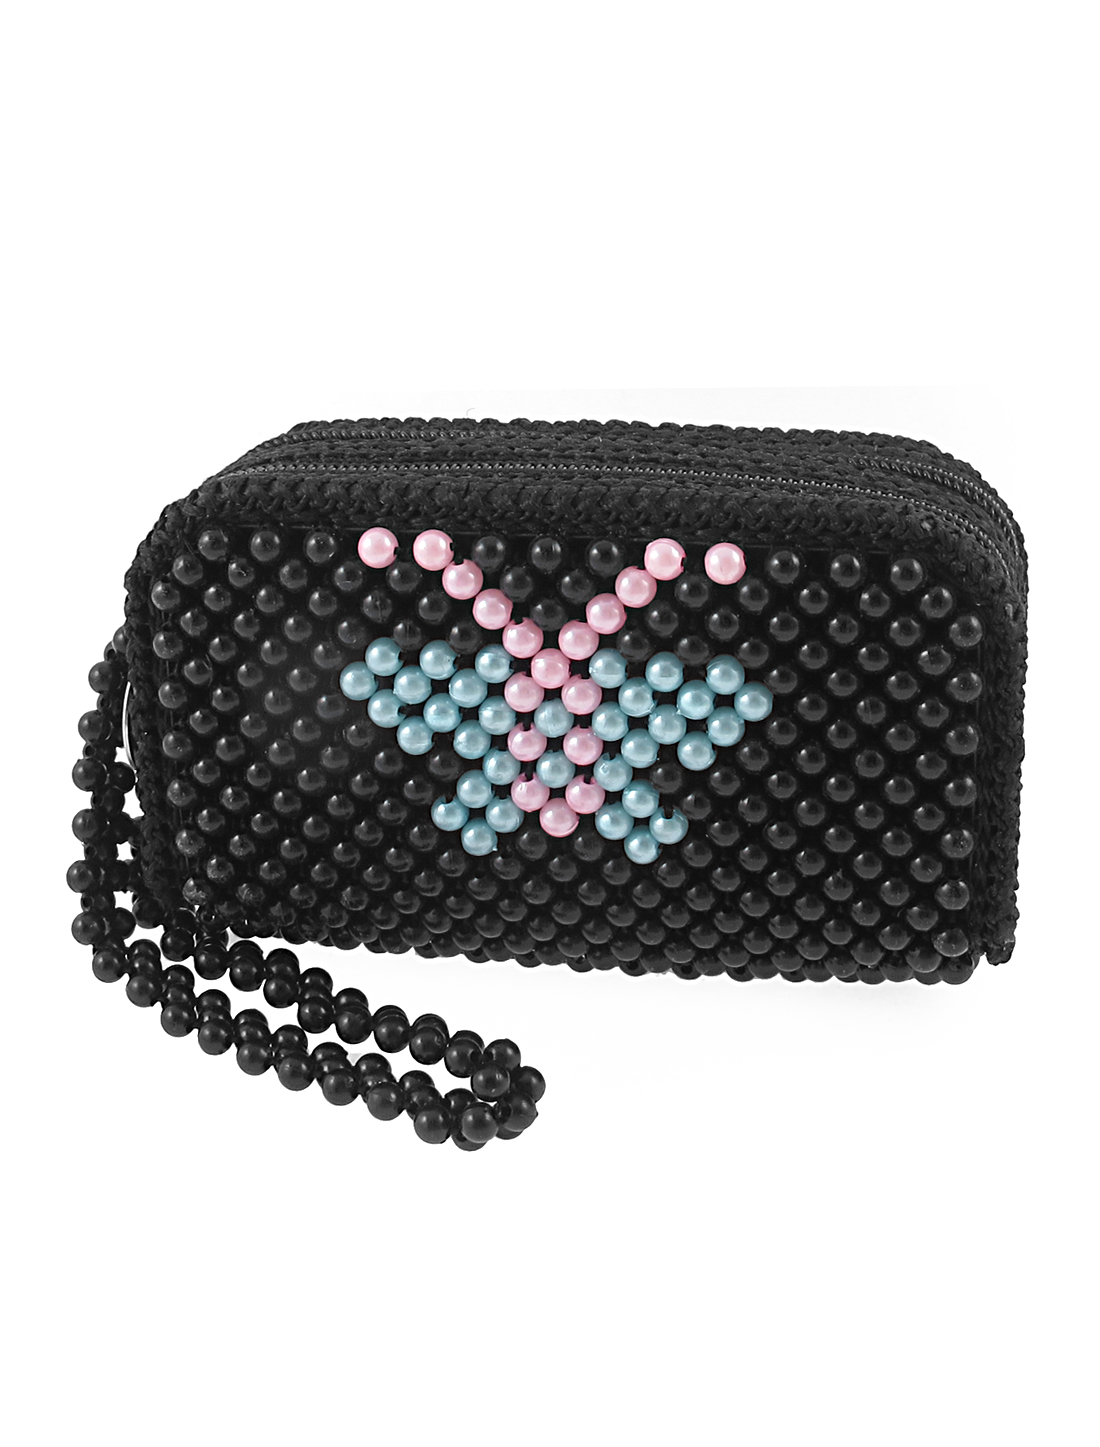 Lady Dual Zippers Beaded Rectangle Wallet Purse Bag Party Gift Black